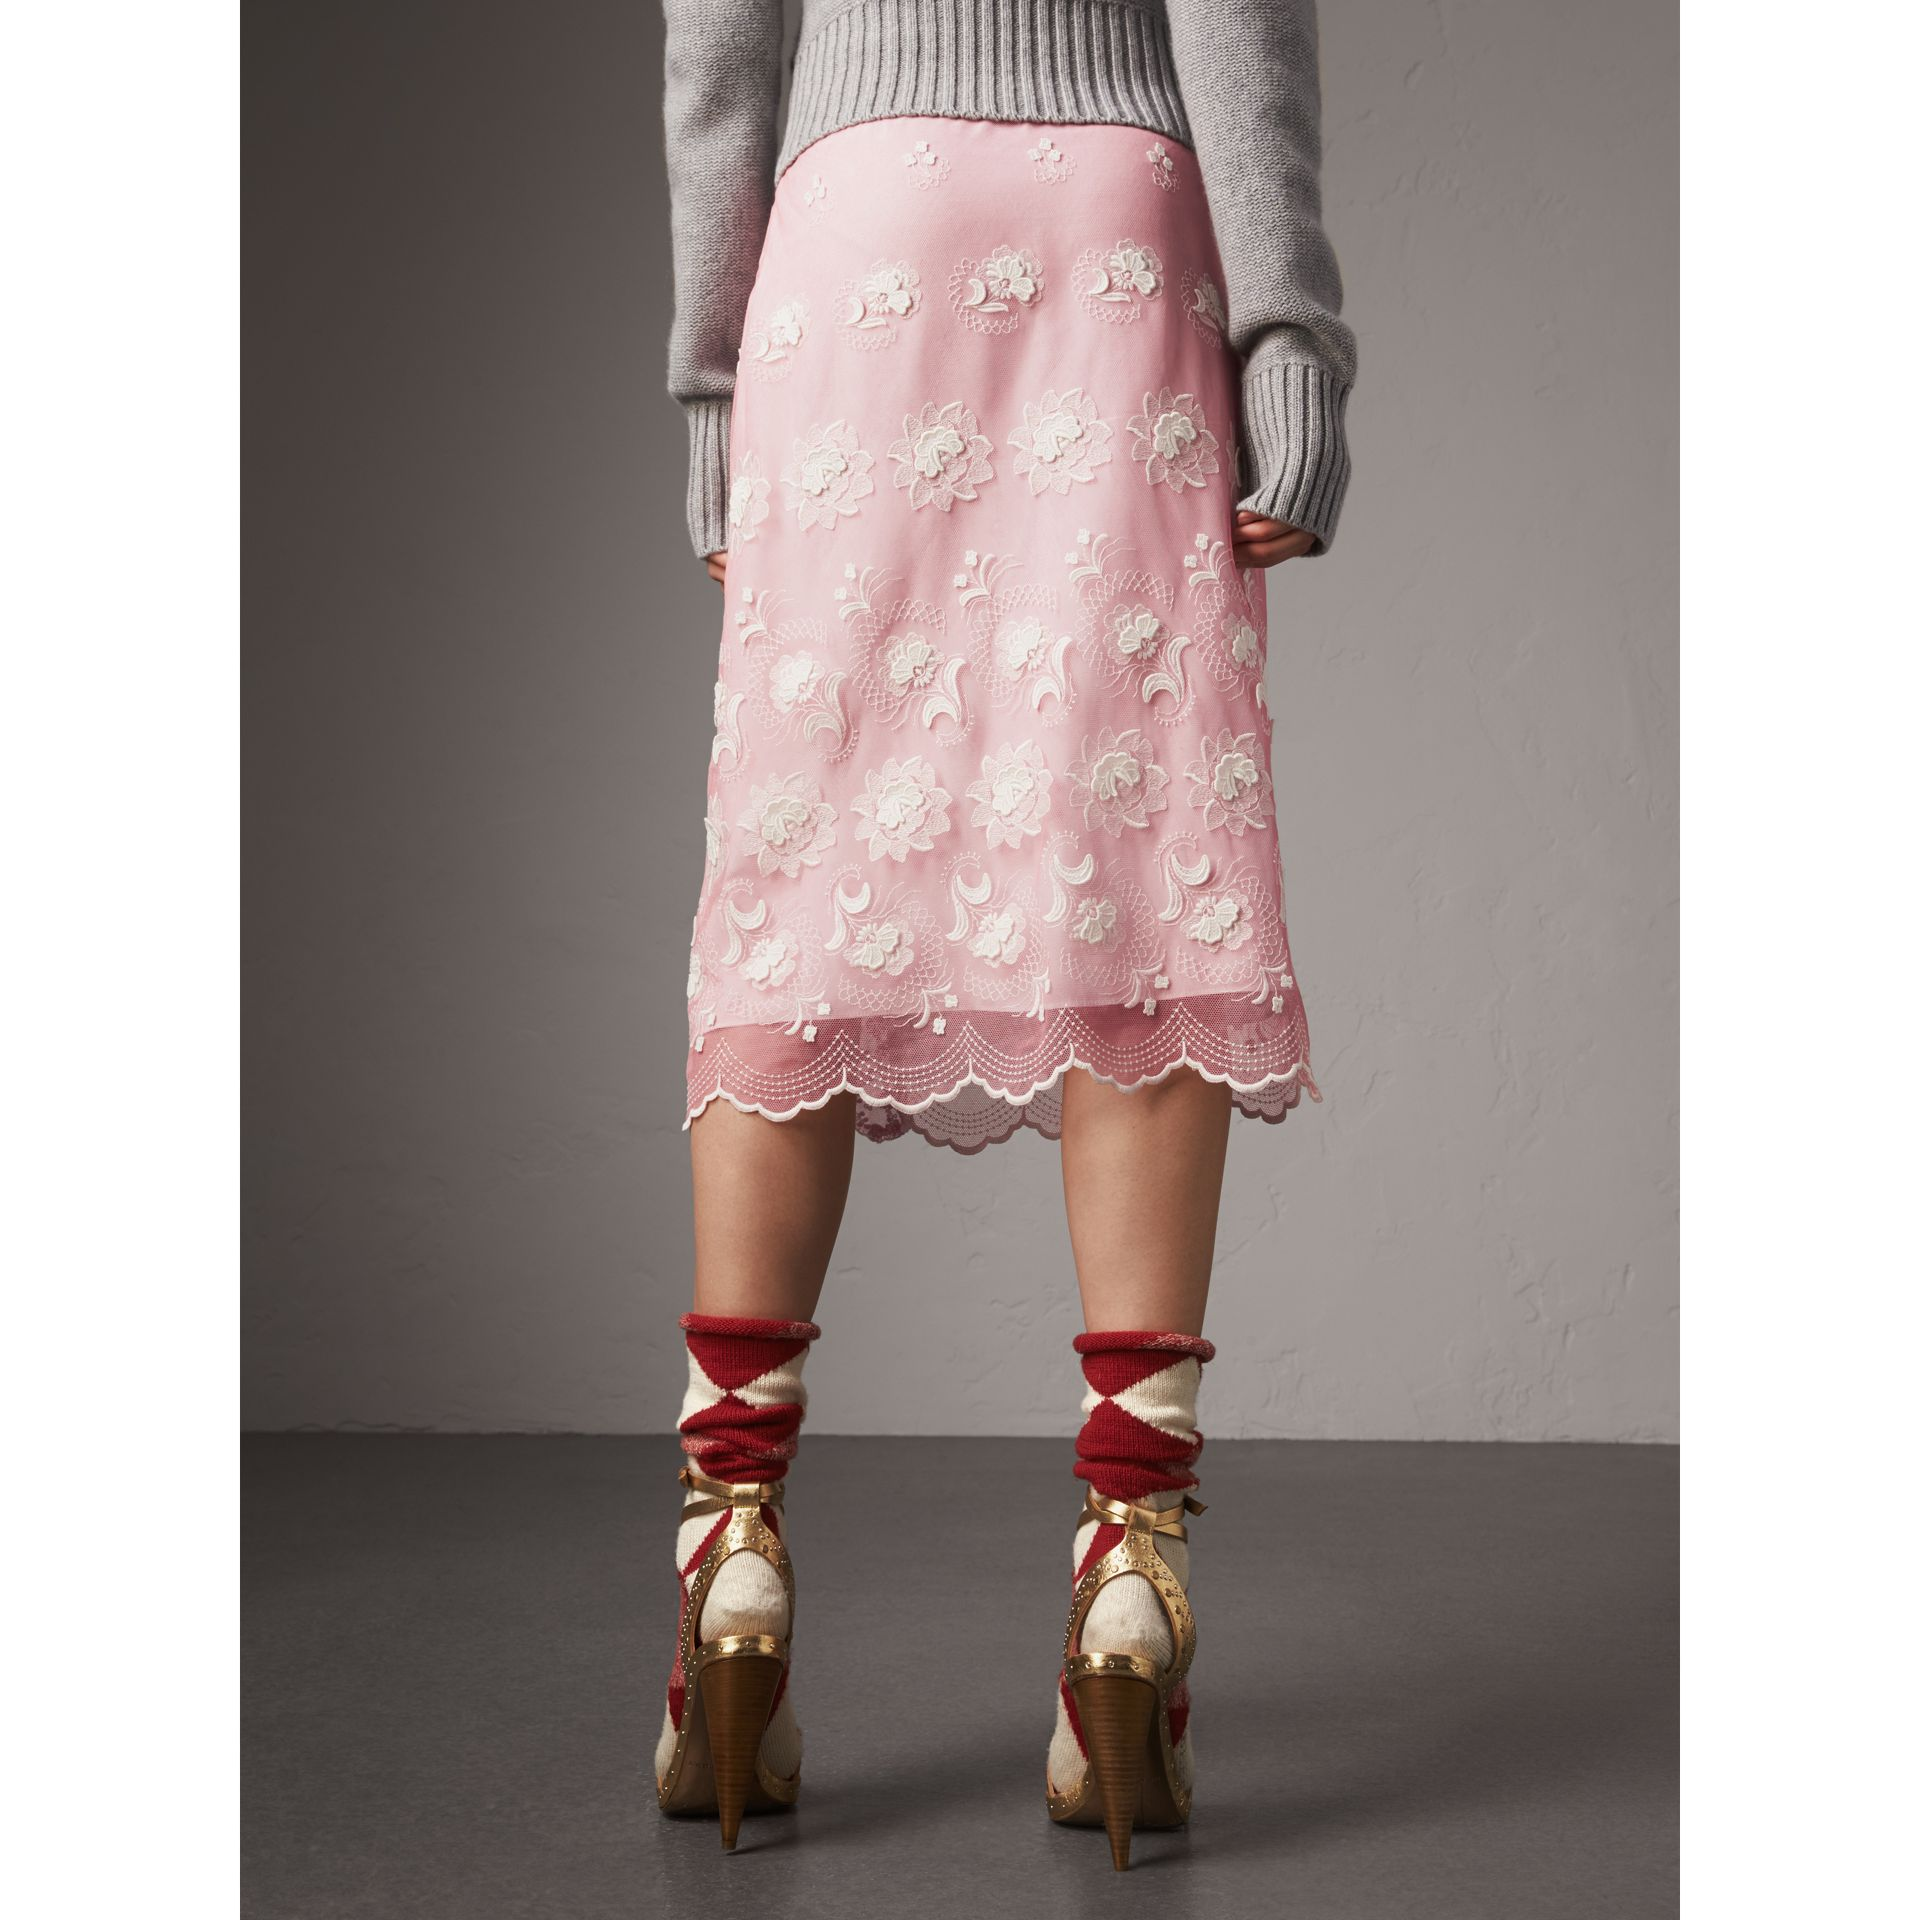 Chantilly Lace Trim Embroidered Tulle Skirt in Rose Pink/white - Women | Burberry - gallery image 3